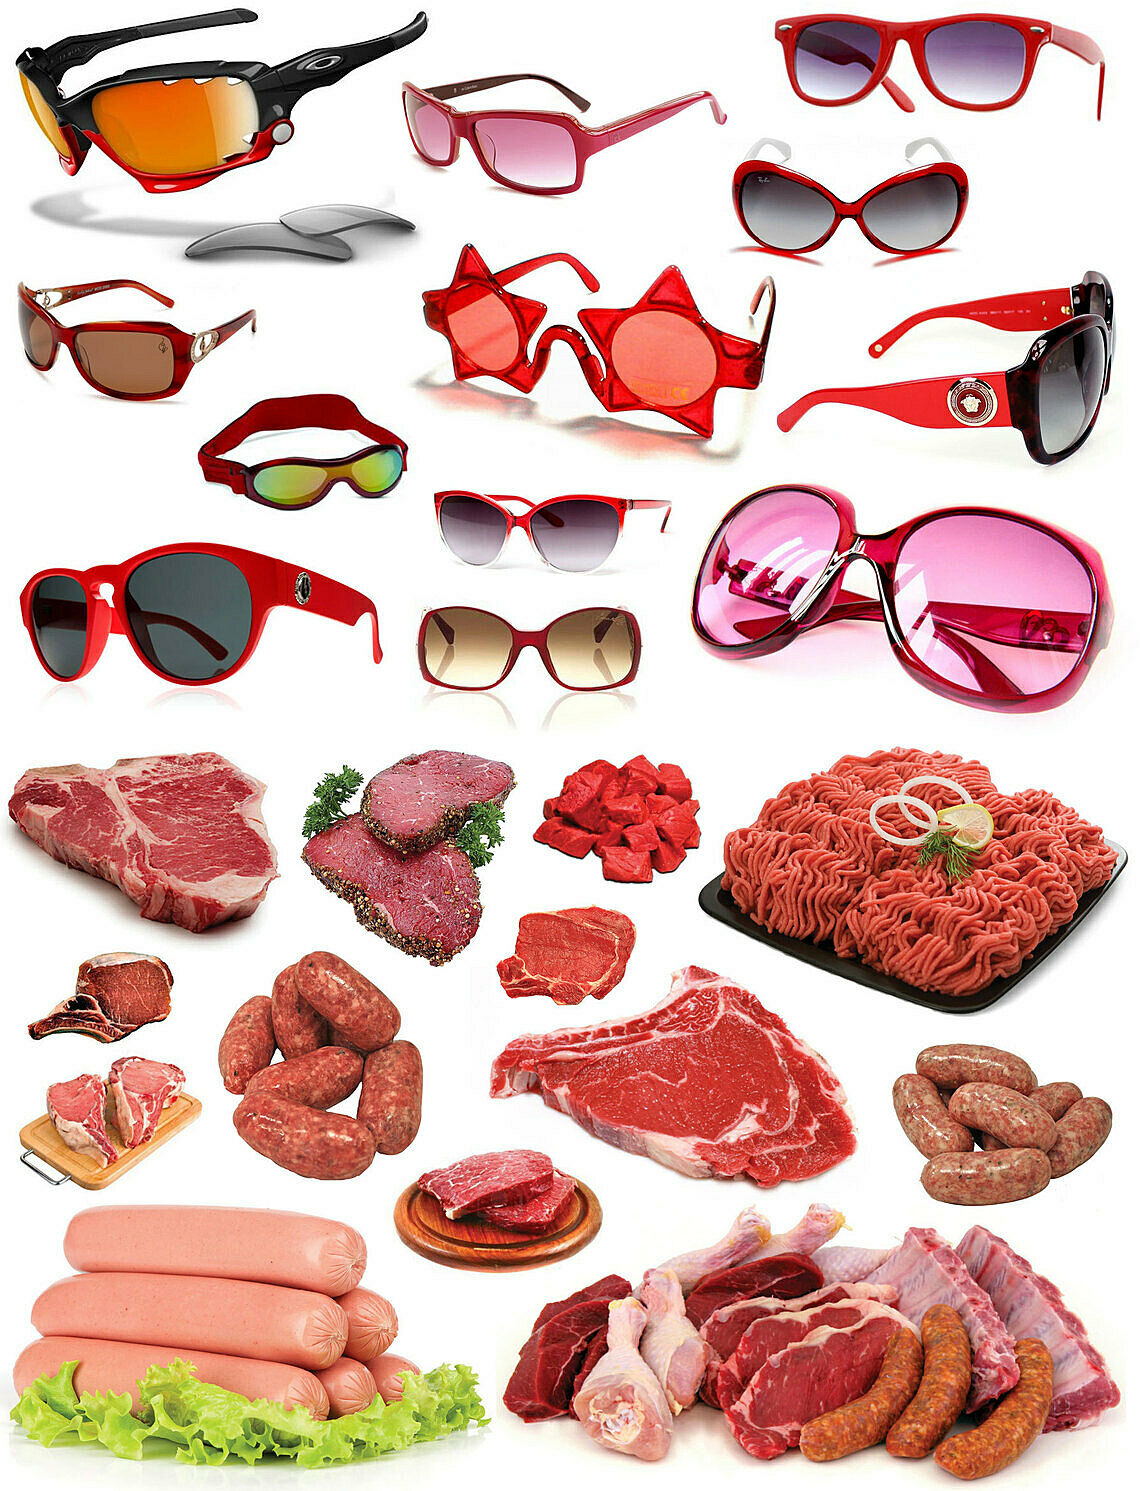 An image of different pairs of red sunglasses and red meat.